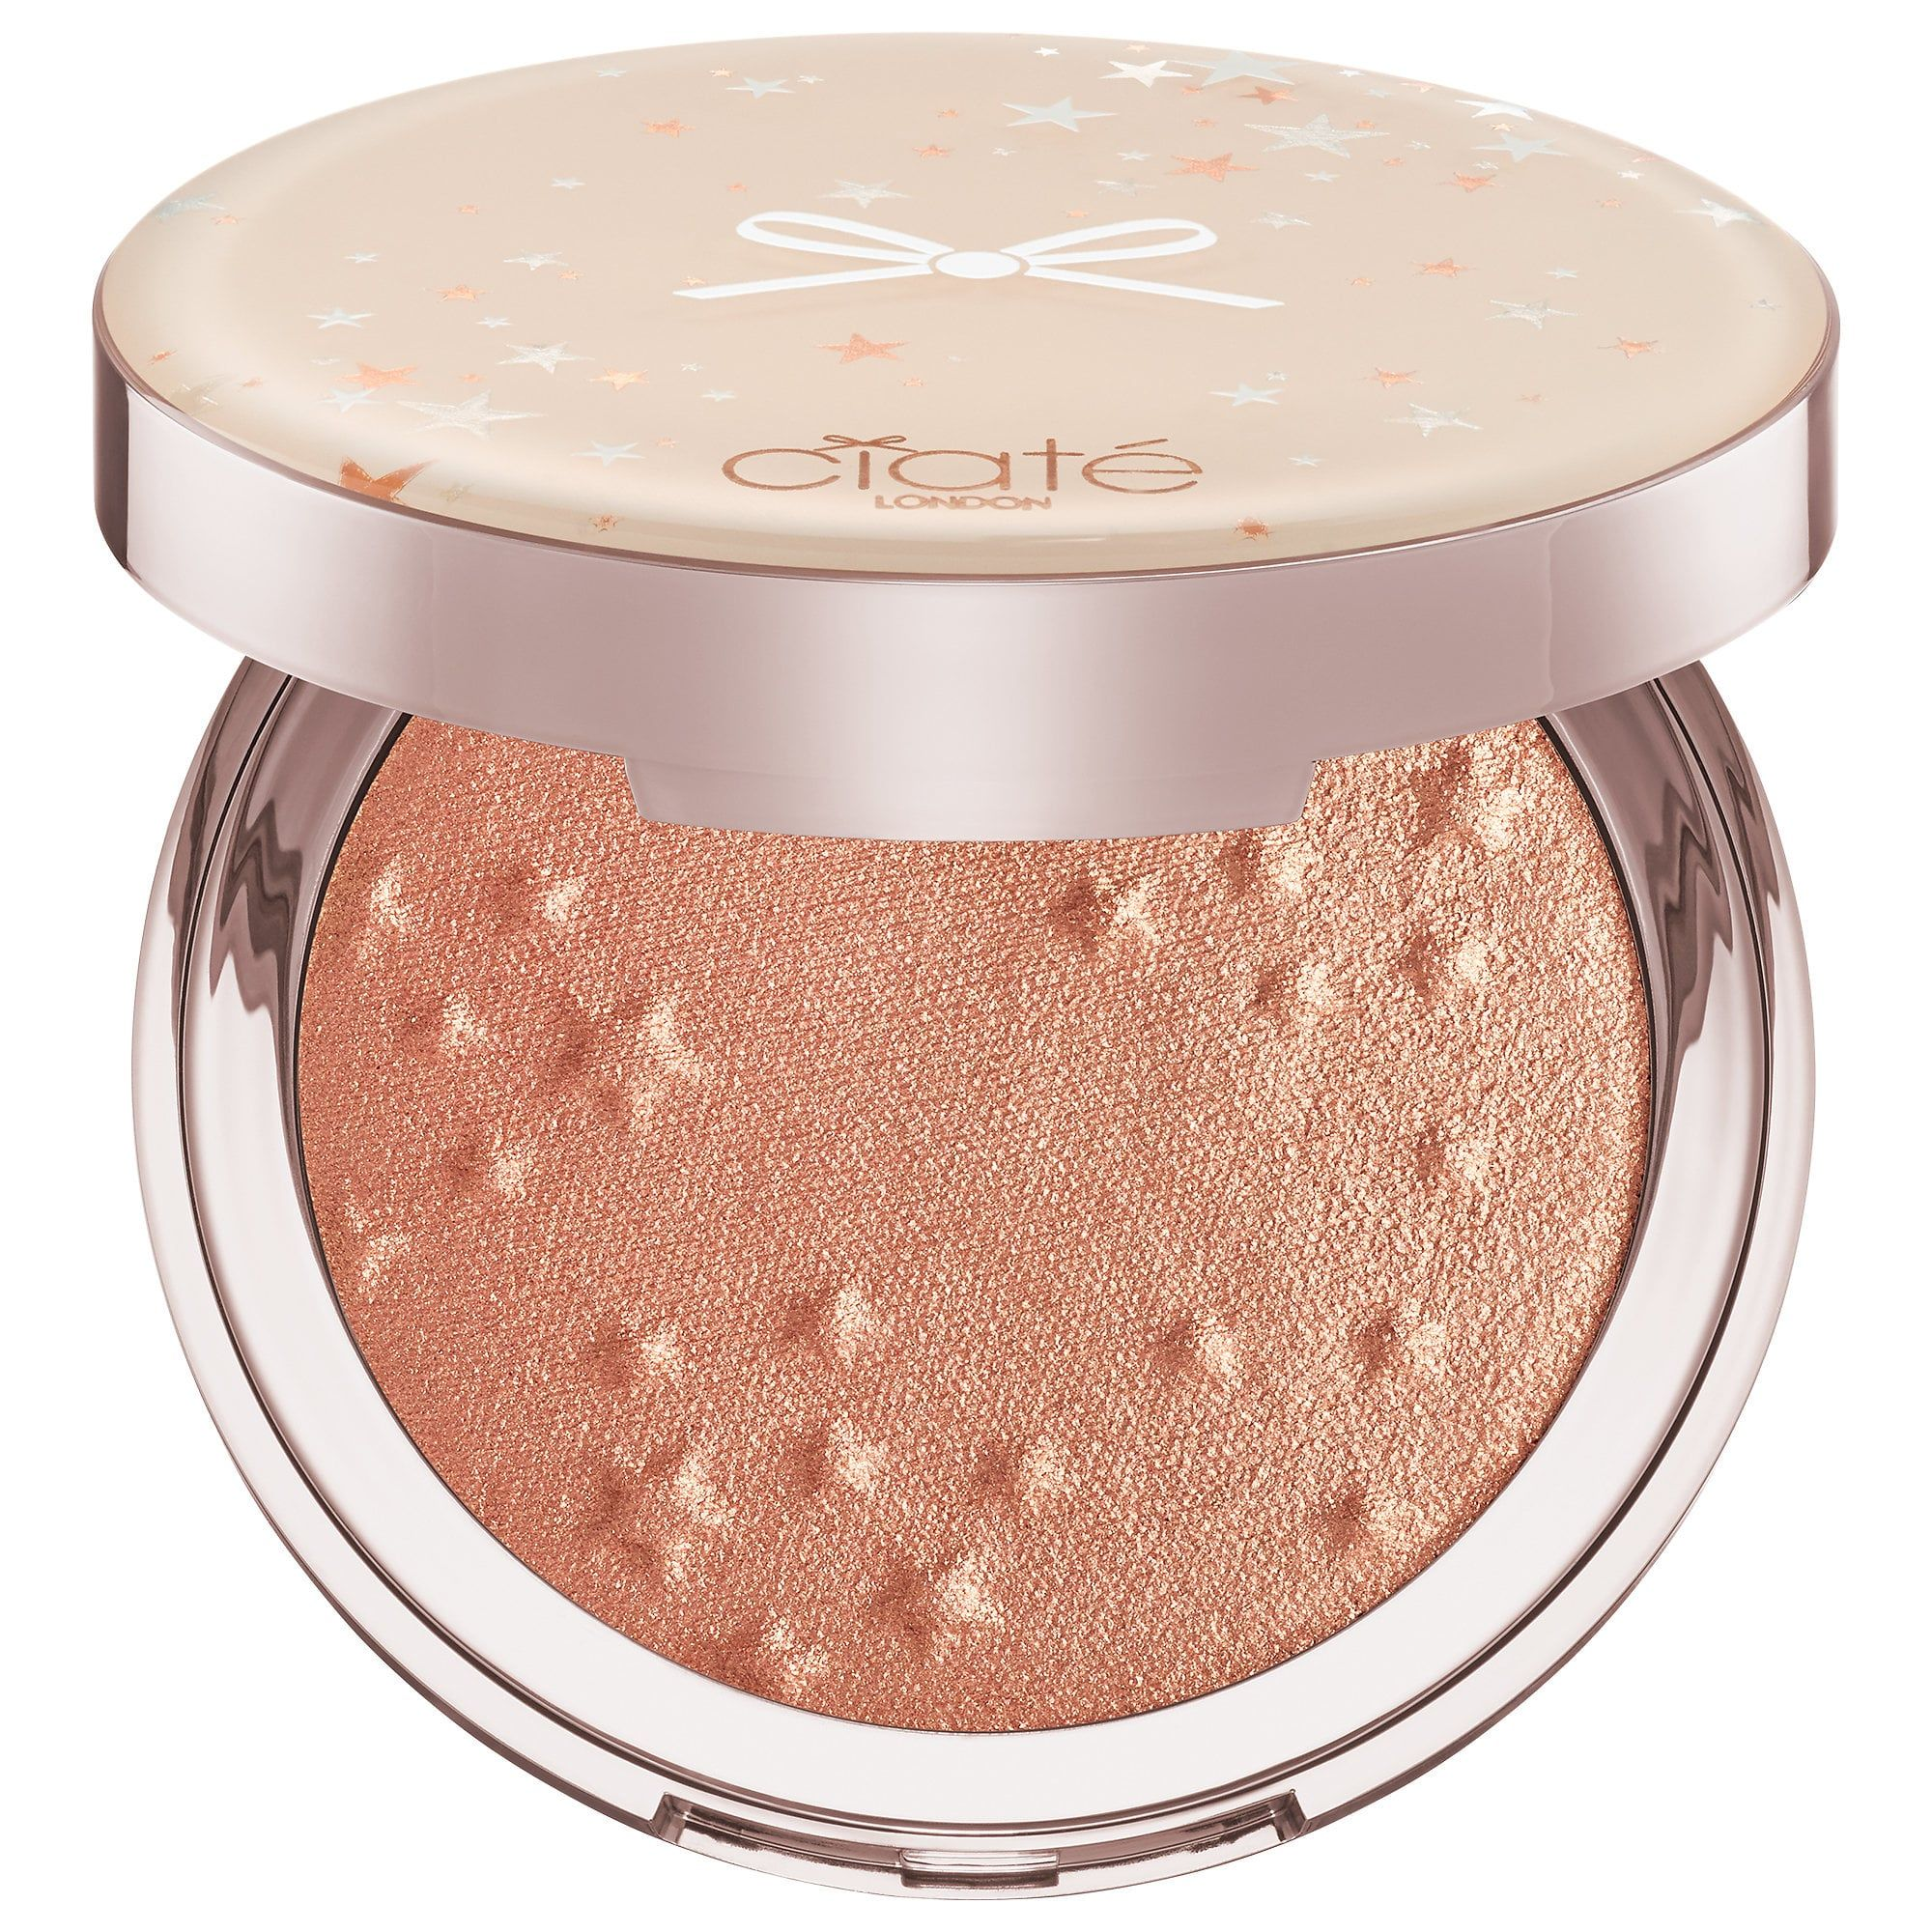 Glow To Highlighter Ciate London Sephora In 2020 Ciate Ciate London Highlighter